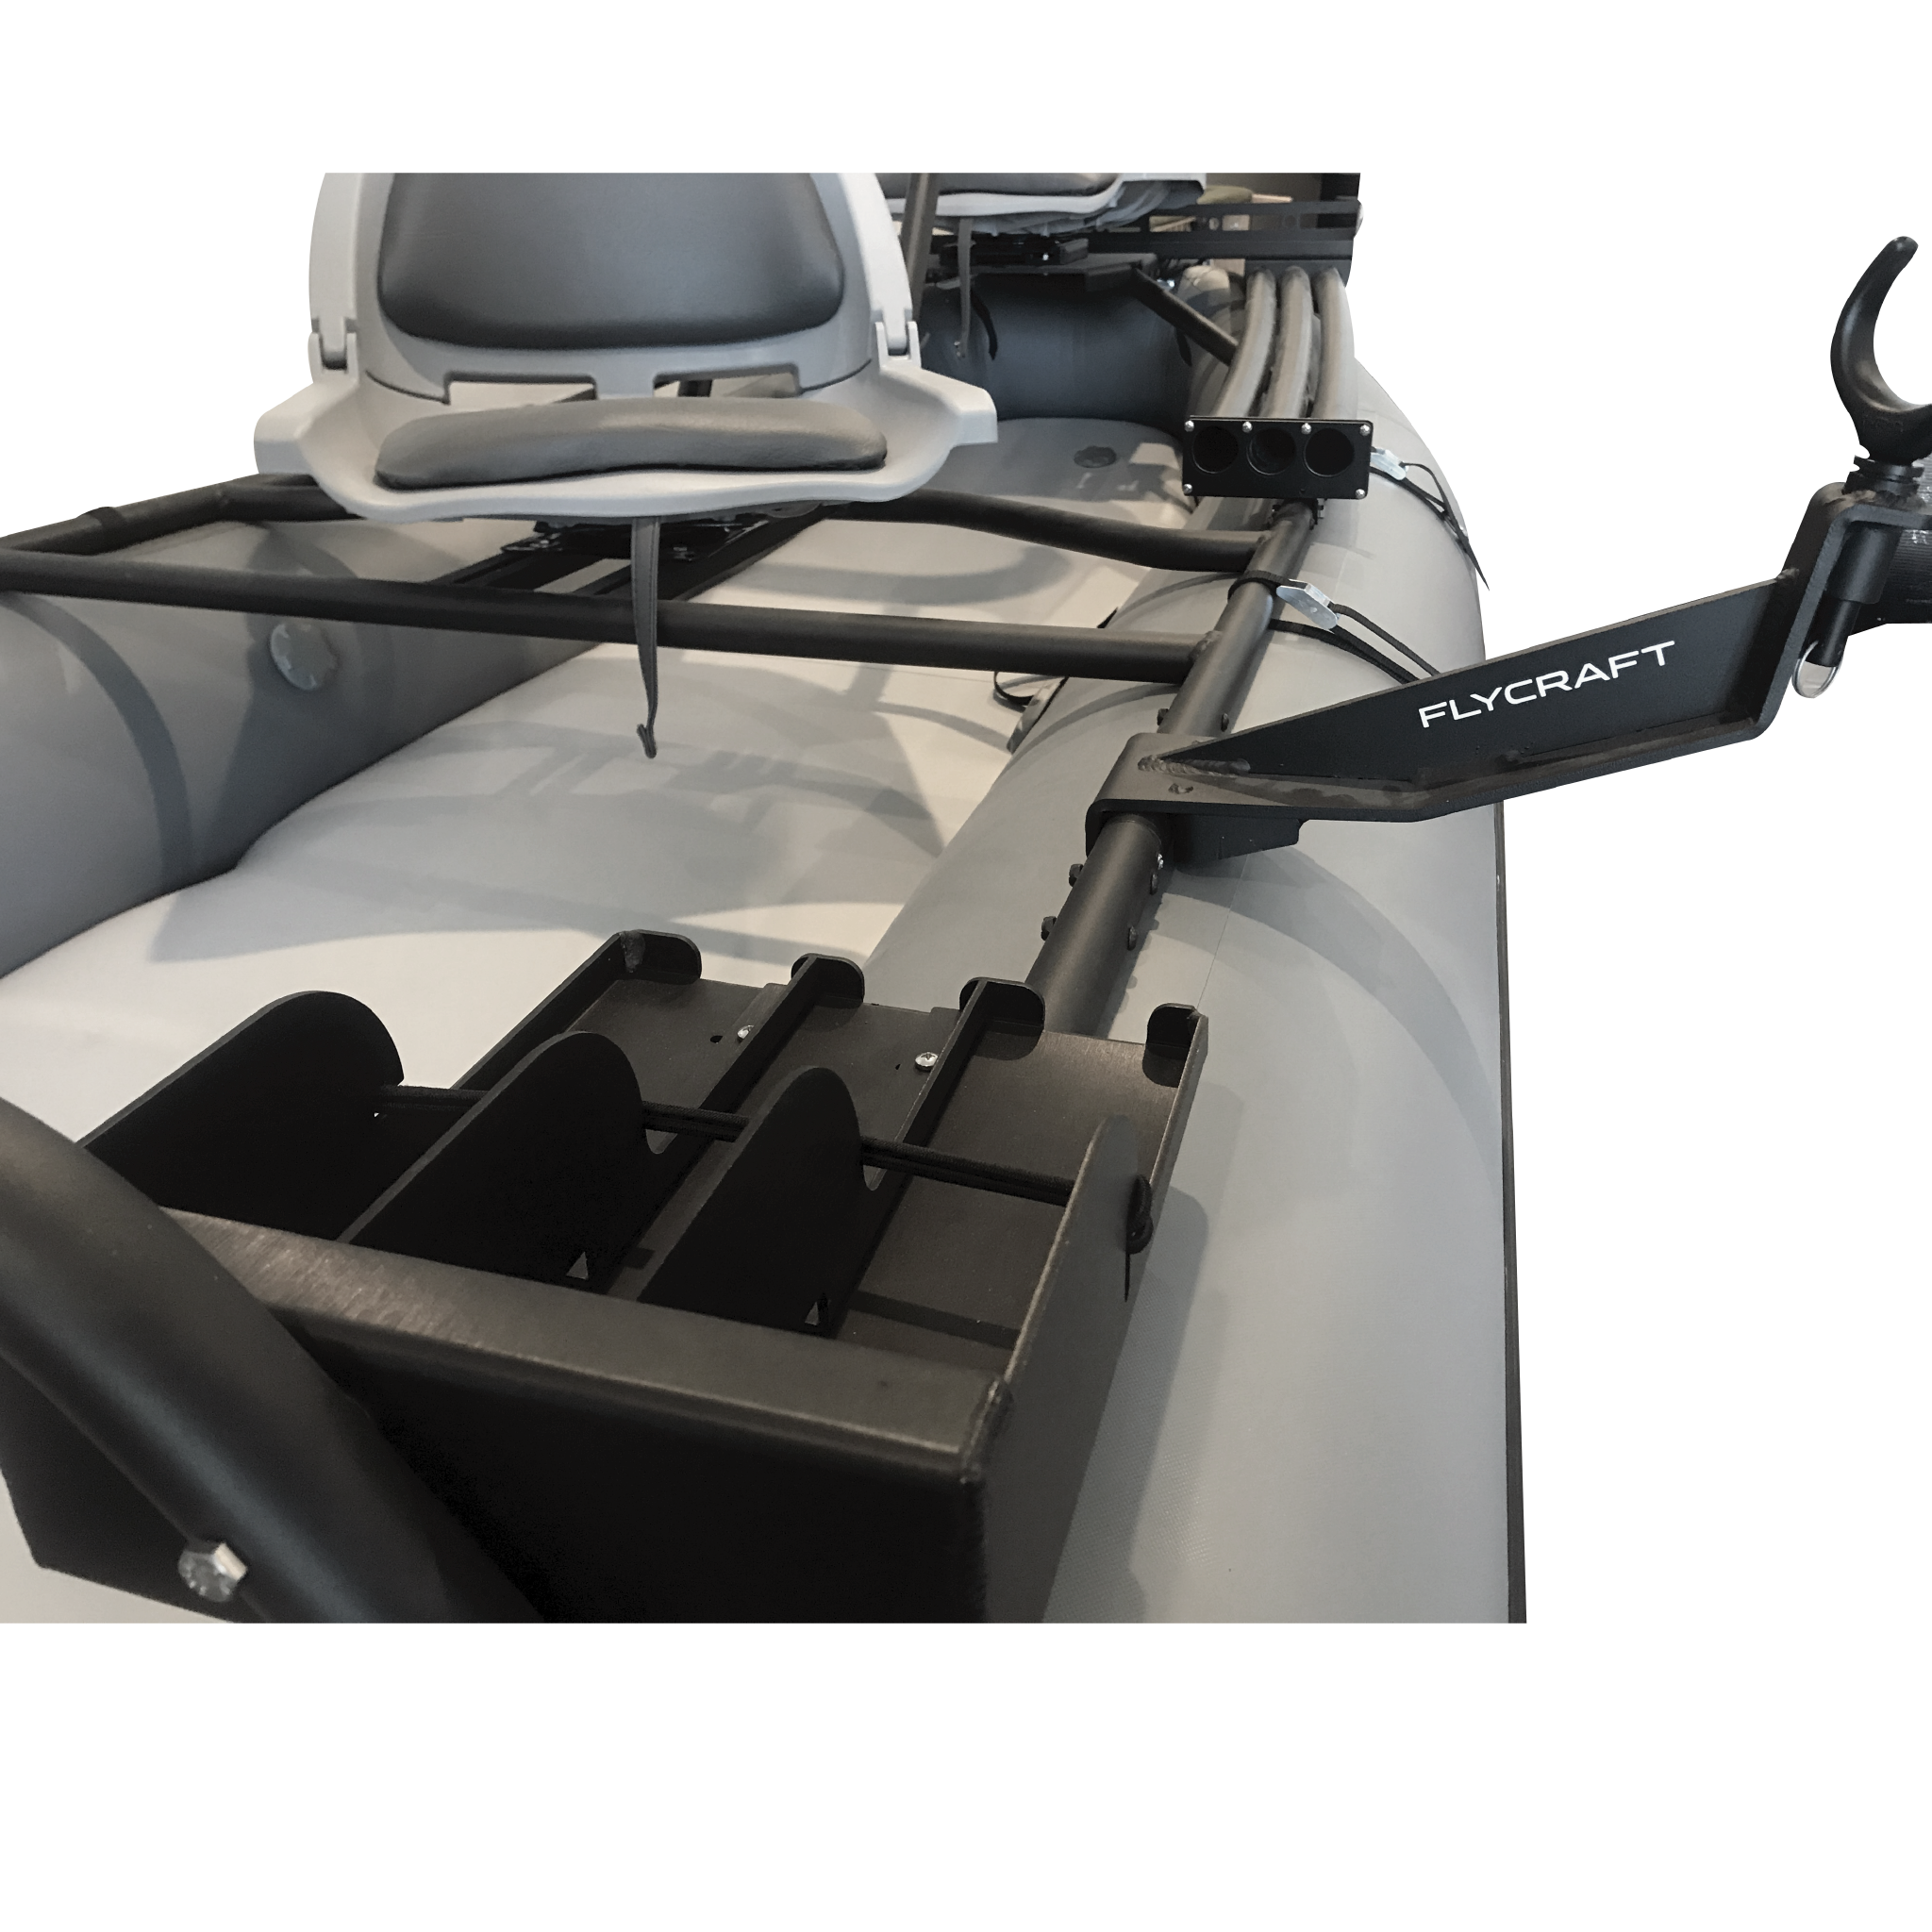 Flycraft 3-Man Rod Holder